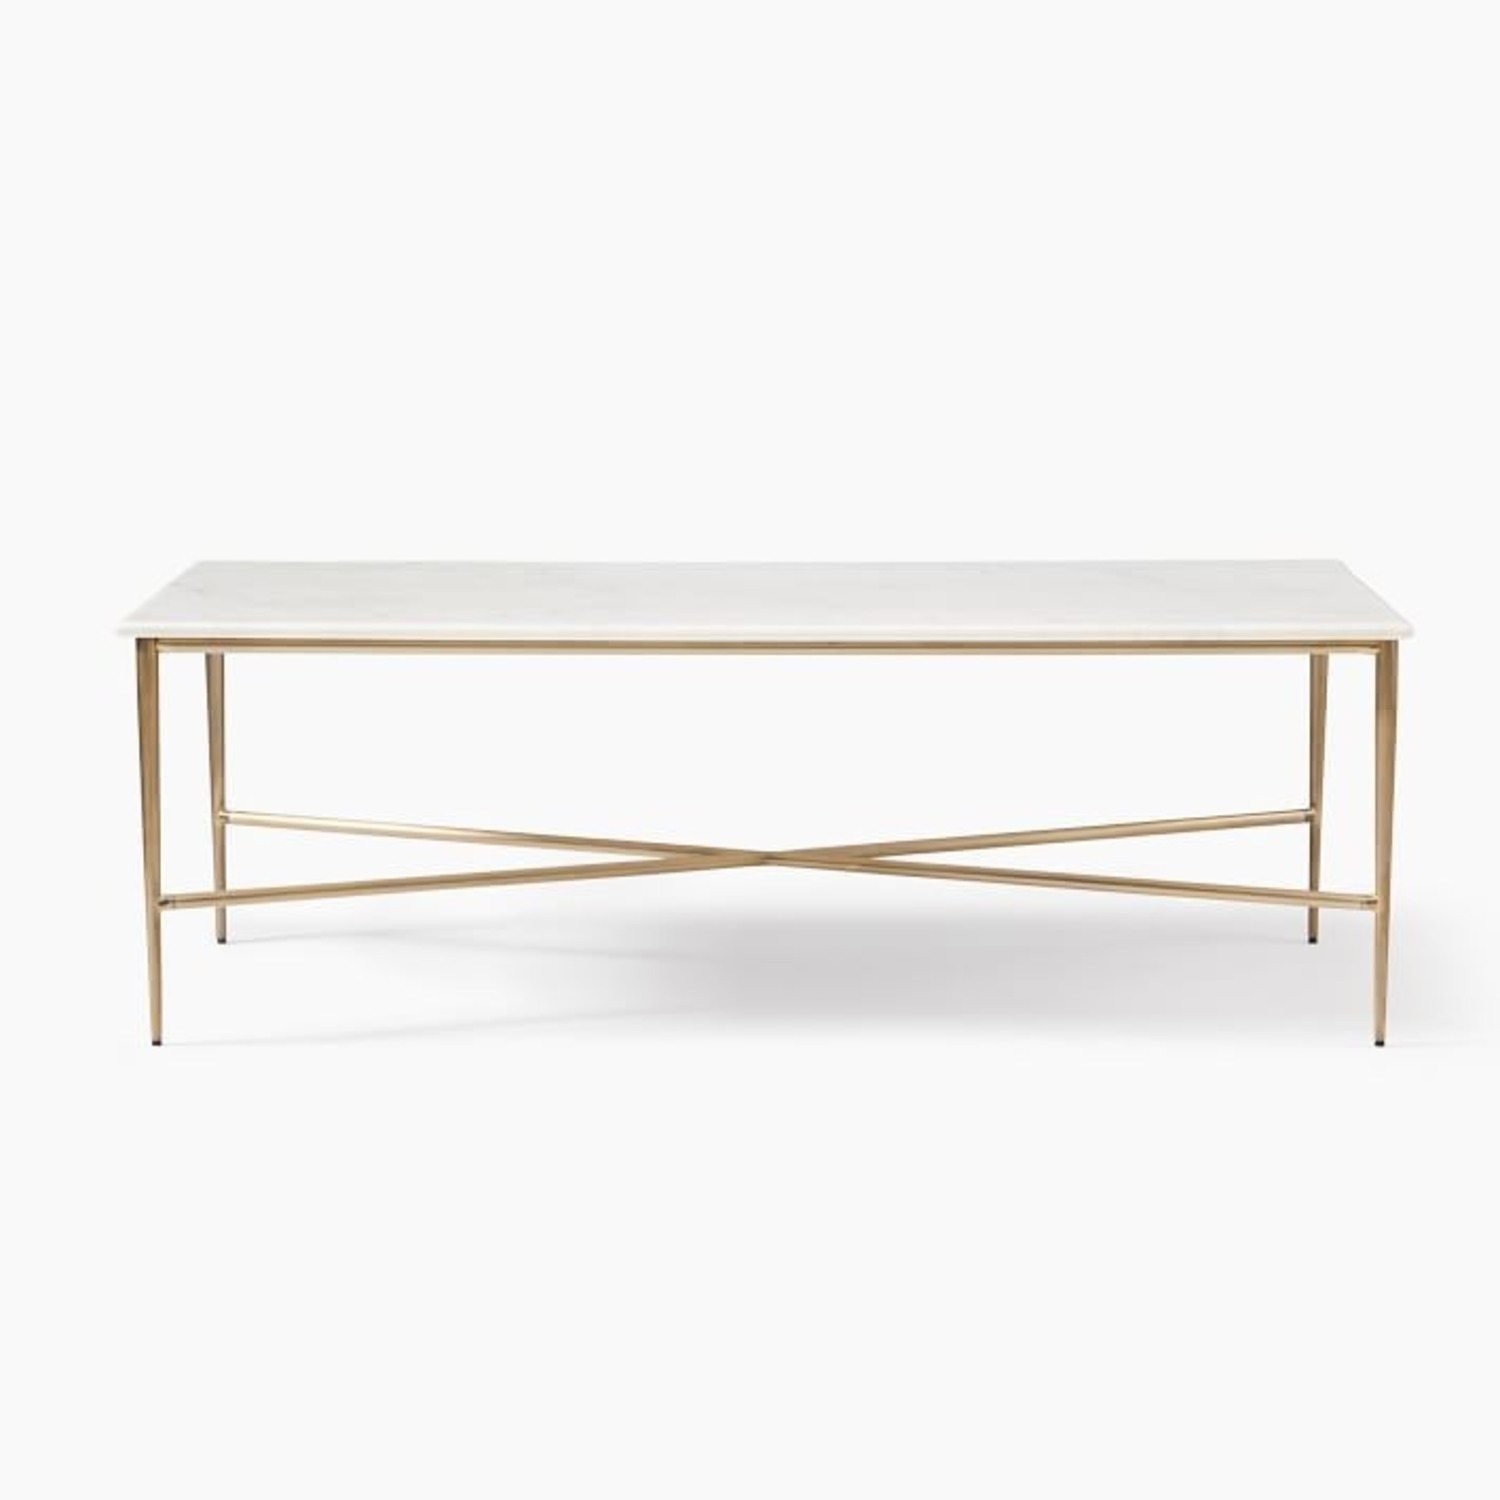 West Elm Neve Rectangle Coffee Table - image-2